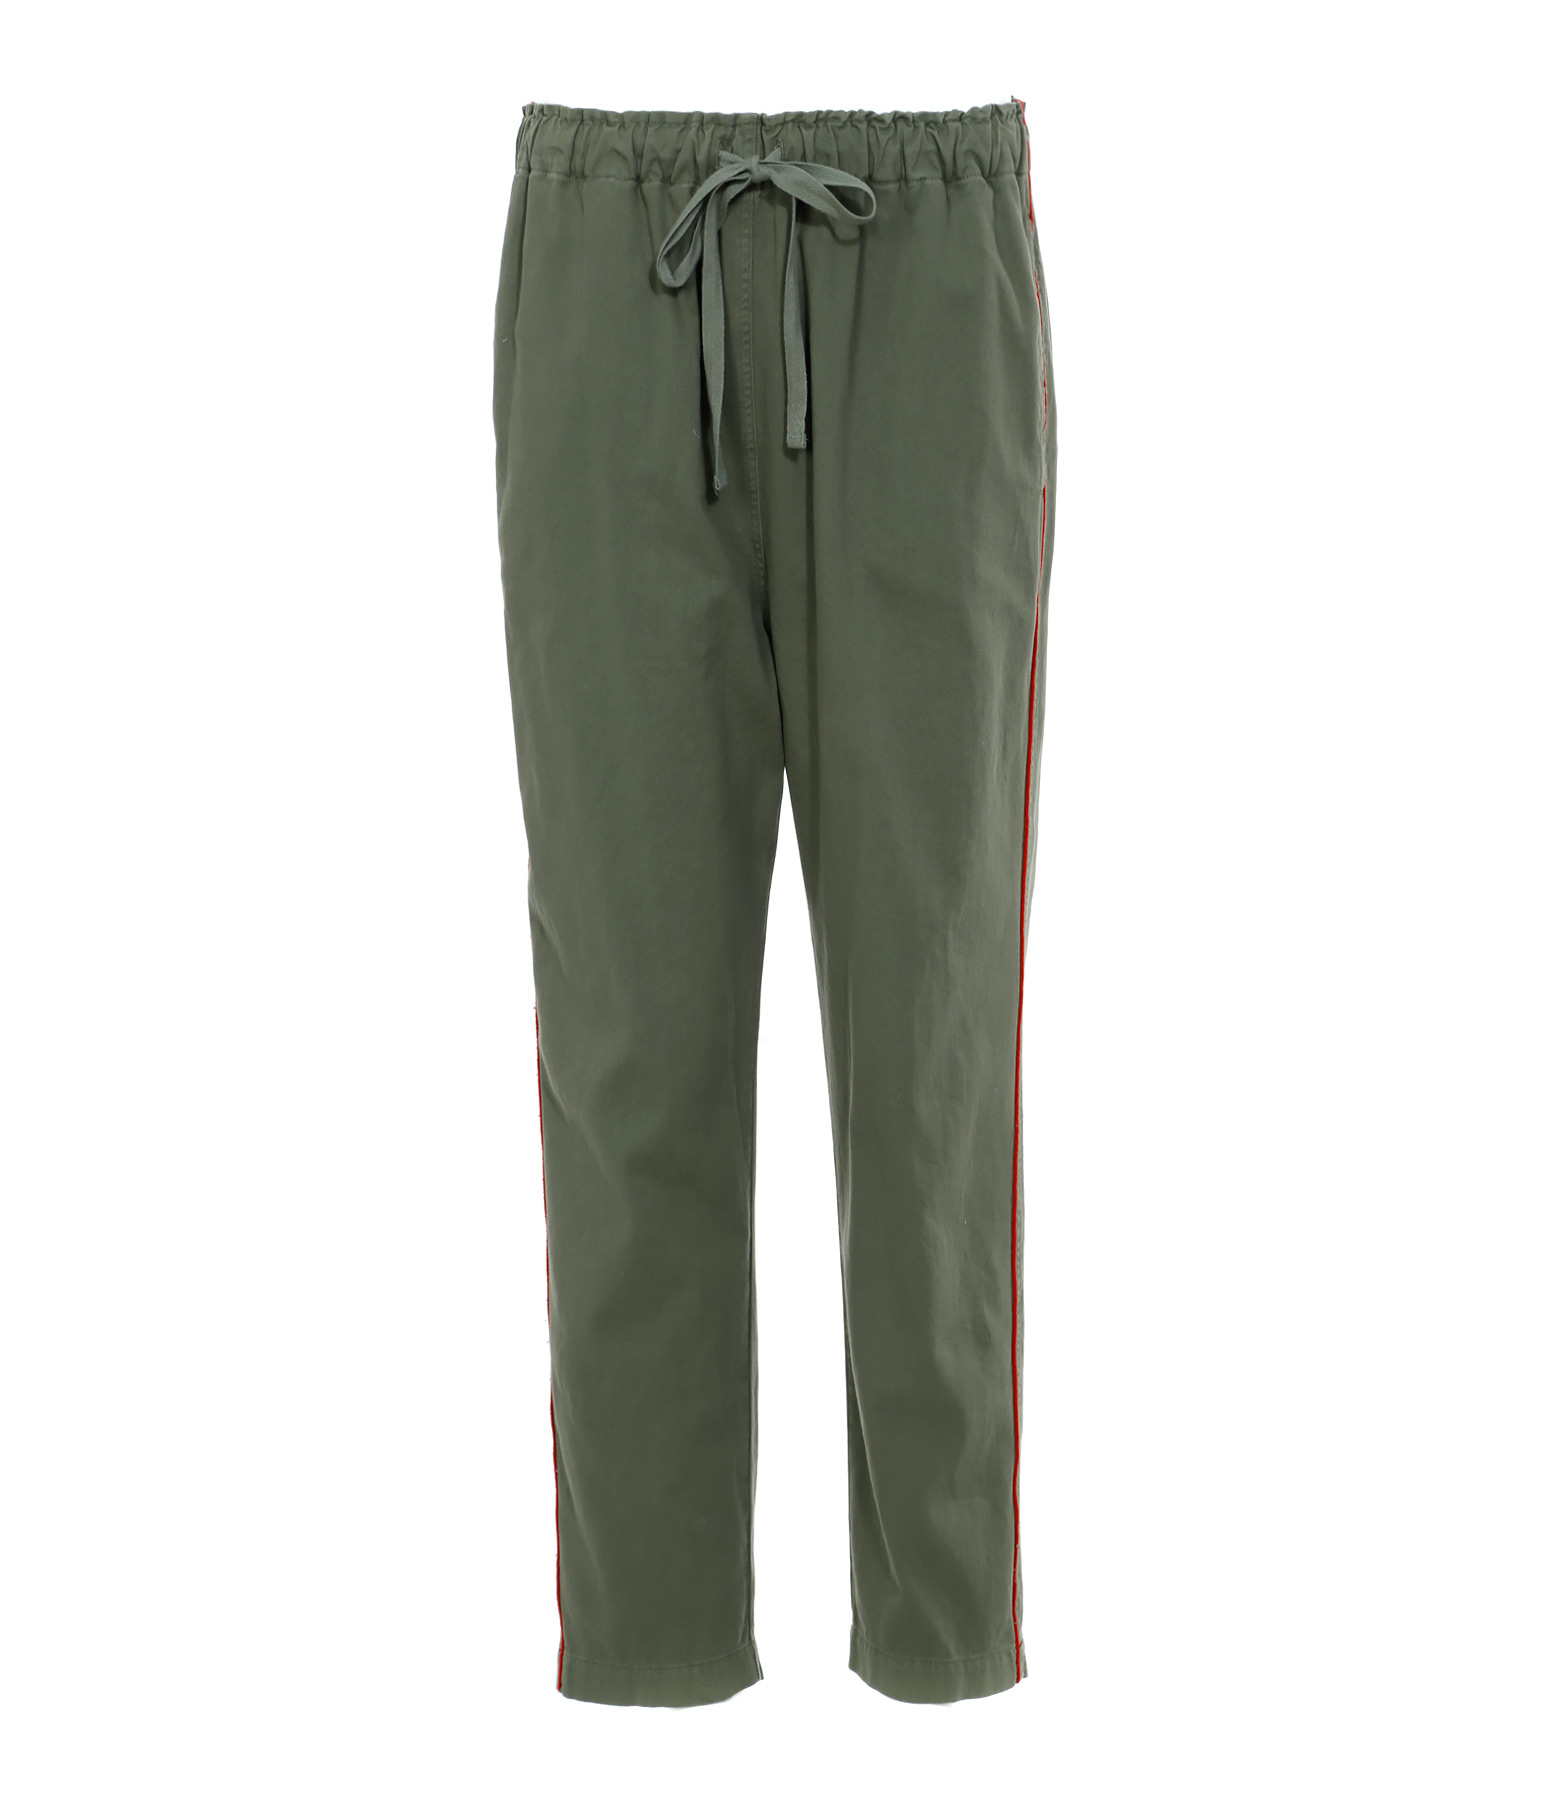 Pantalon Cotton Twill Xander Vintage Army